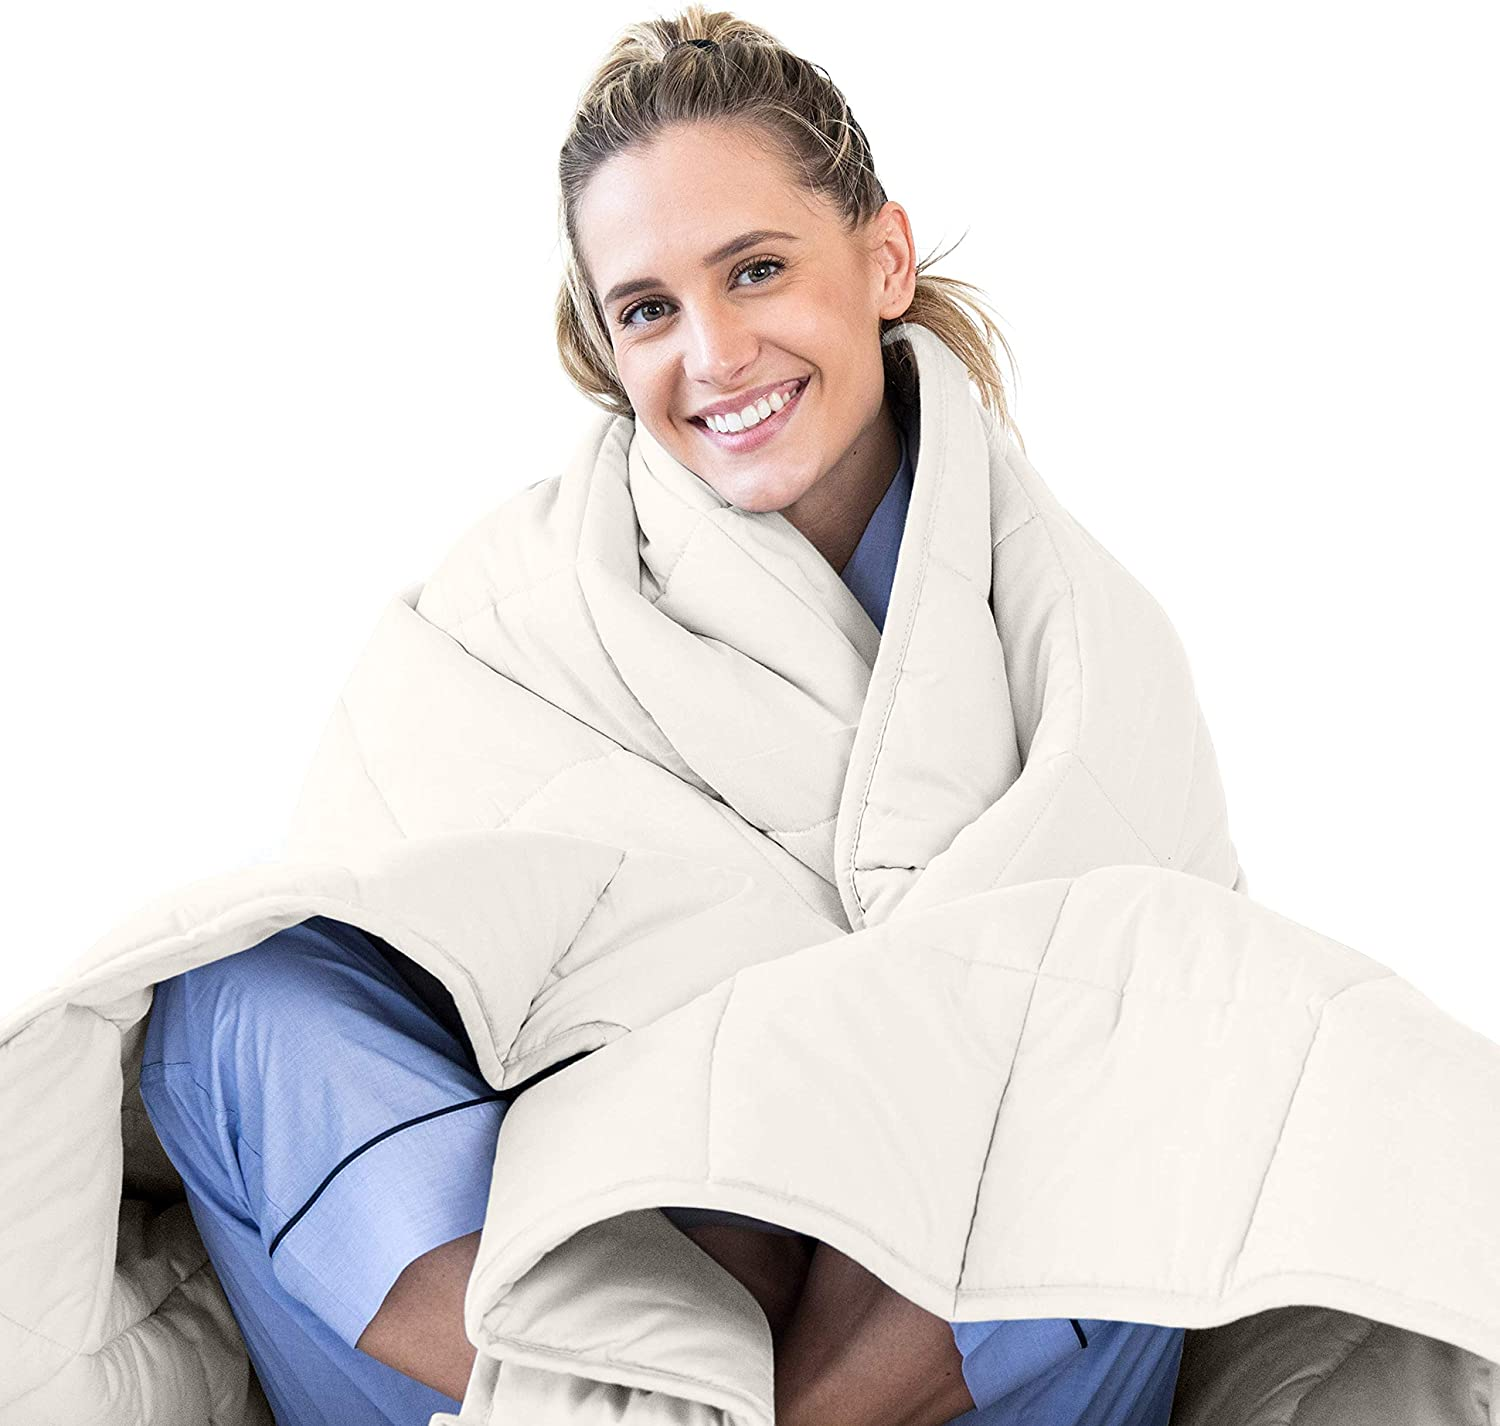 LUNA Adult Weighted Blanket | Individual Use - 17 lbs - 60x80 - Queen Size Bed | 100% Oeko-Tex Certified Cooling Cotton & Glass Beads | USA Designed | Heavy Cool Weight | Ivory